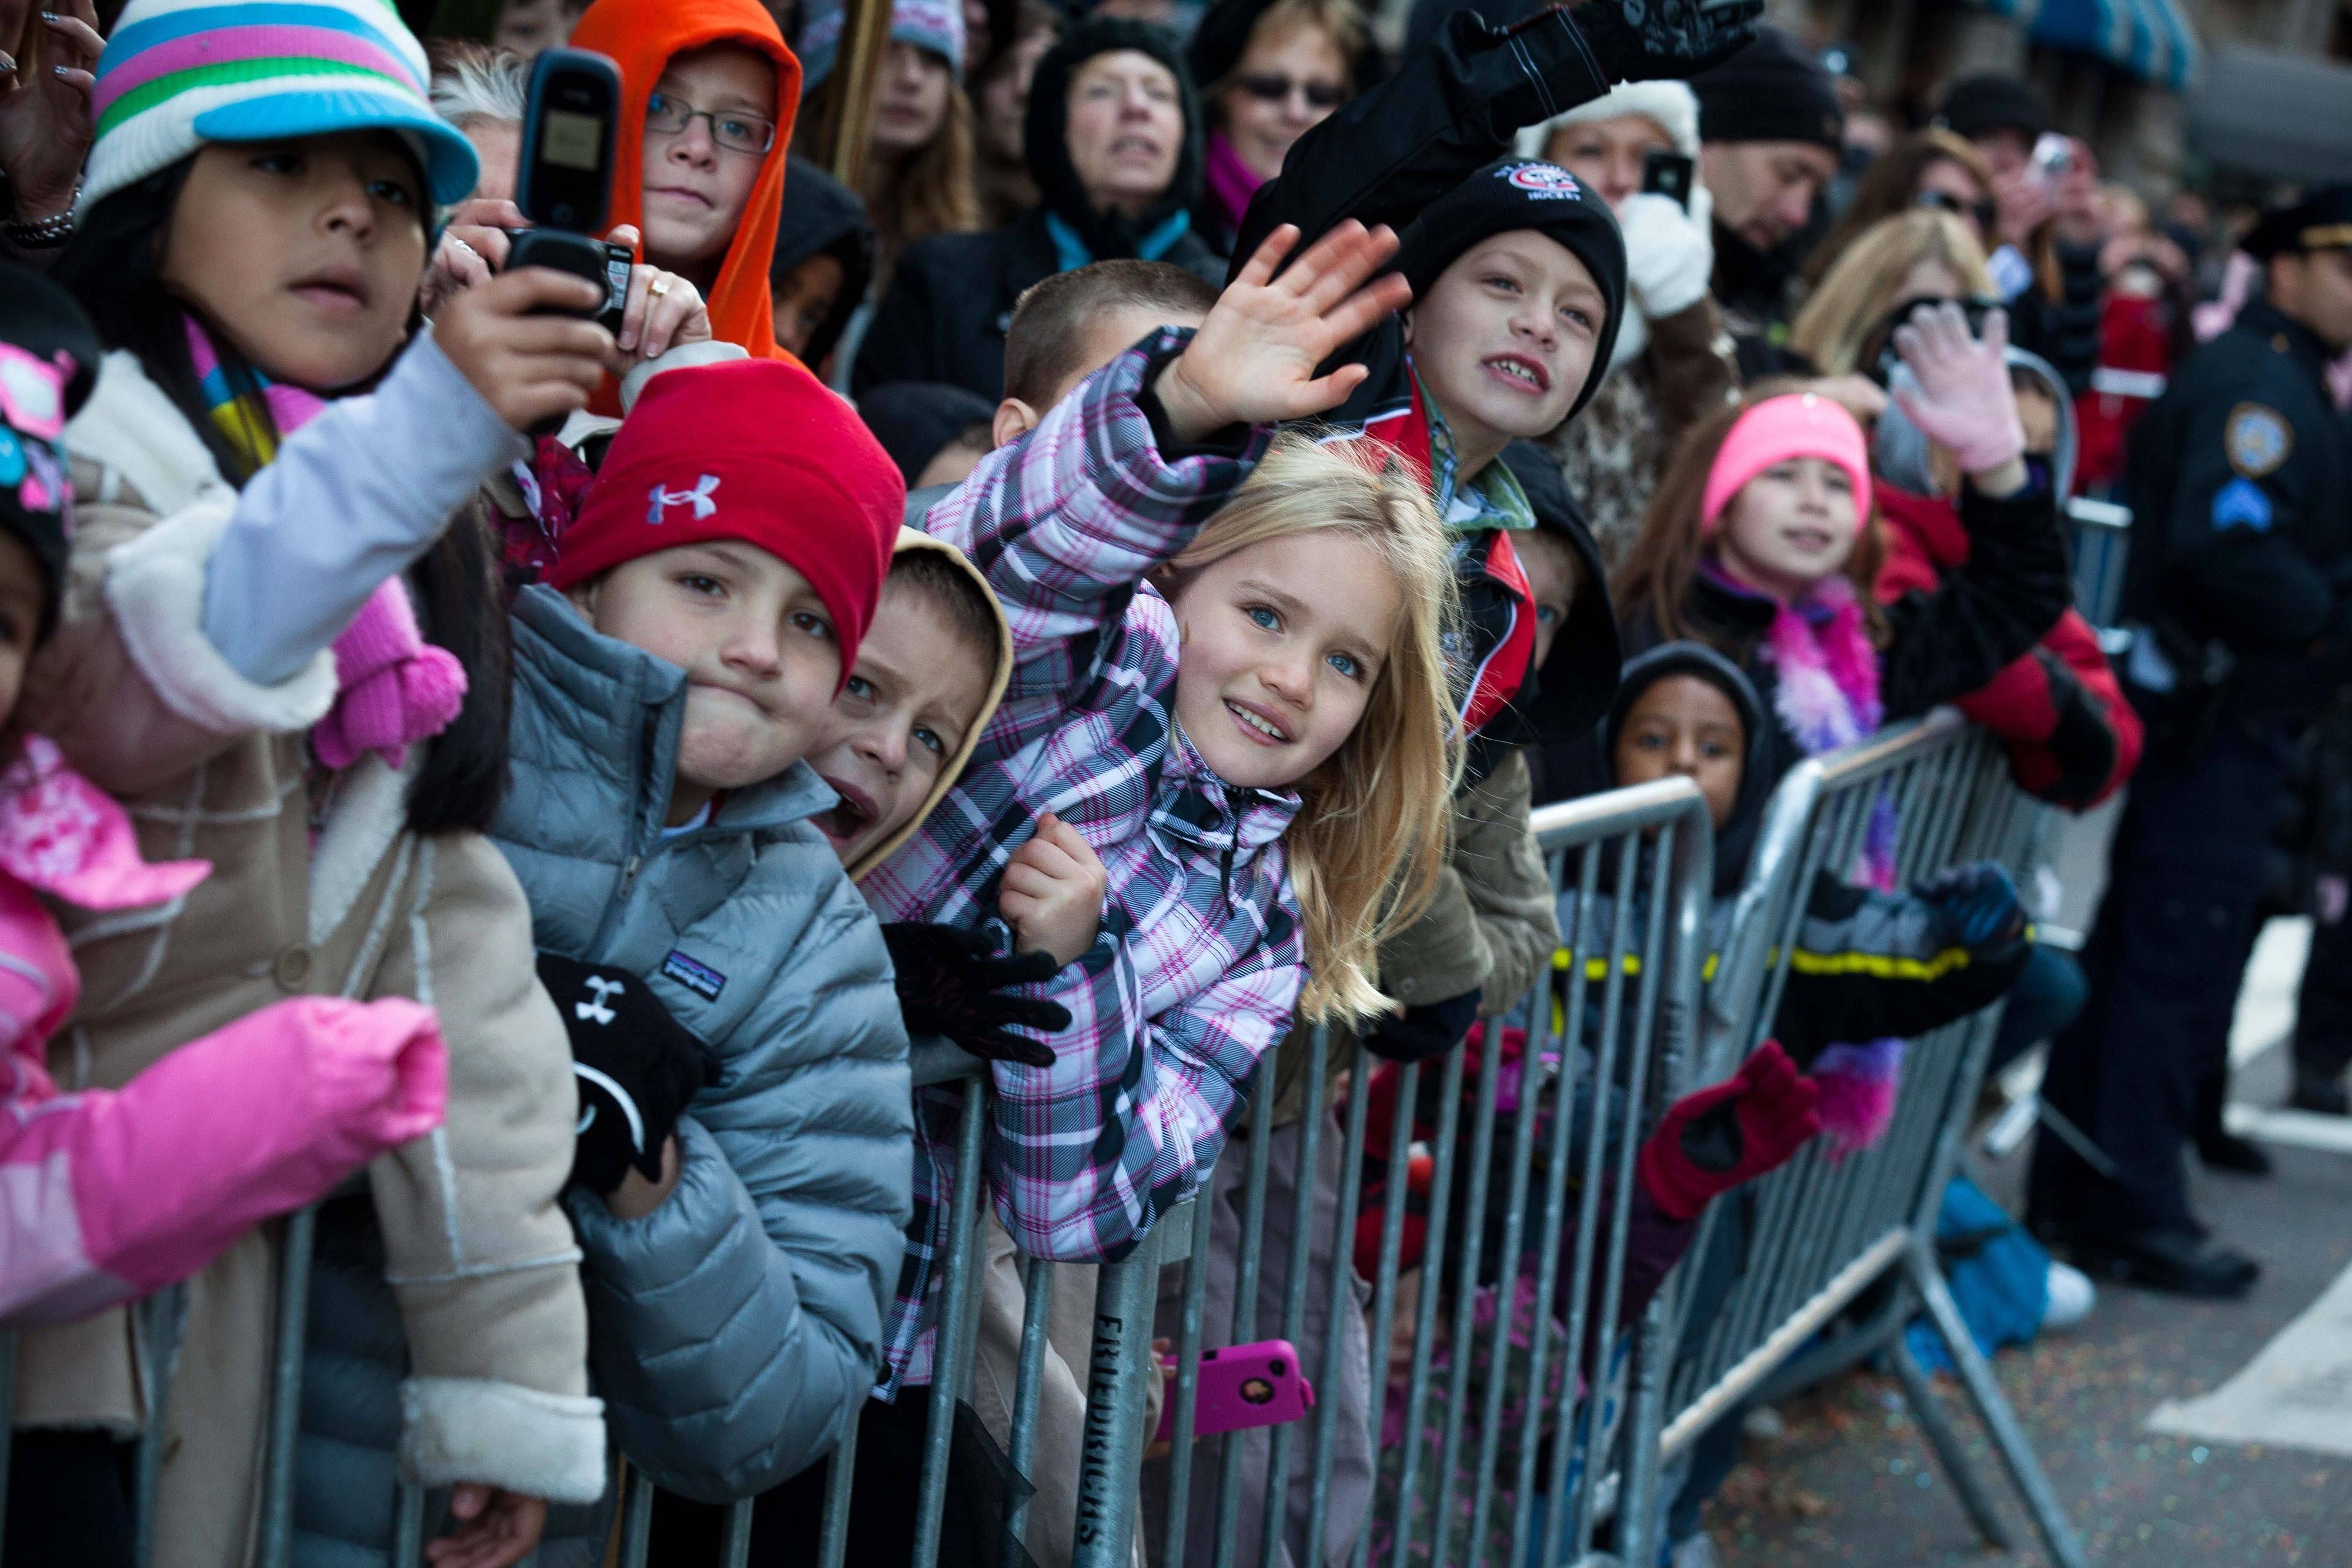 Young spectators wave to Santa Claus as he rolls down 7th Avenue during the Macy's Thanksgiving Day Parade, Thursday, Nov. 24, 2011, in New York. A jetpack-wearing monkey and a freakish creation from filmmaker Tim Burton are two of the big new balloons that will make their inaugural appearances in front of millions of people at this year's parade.